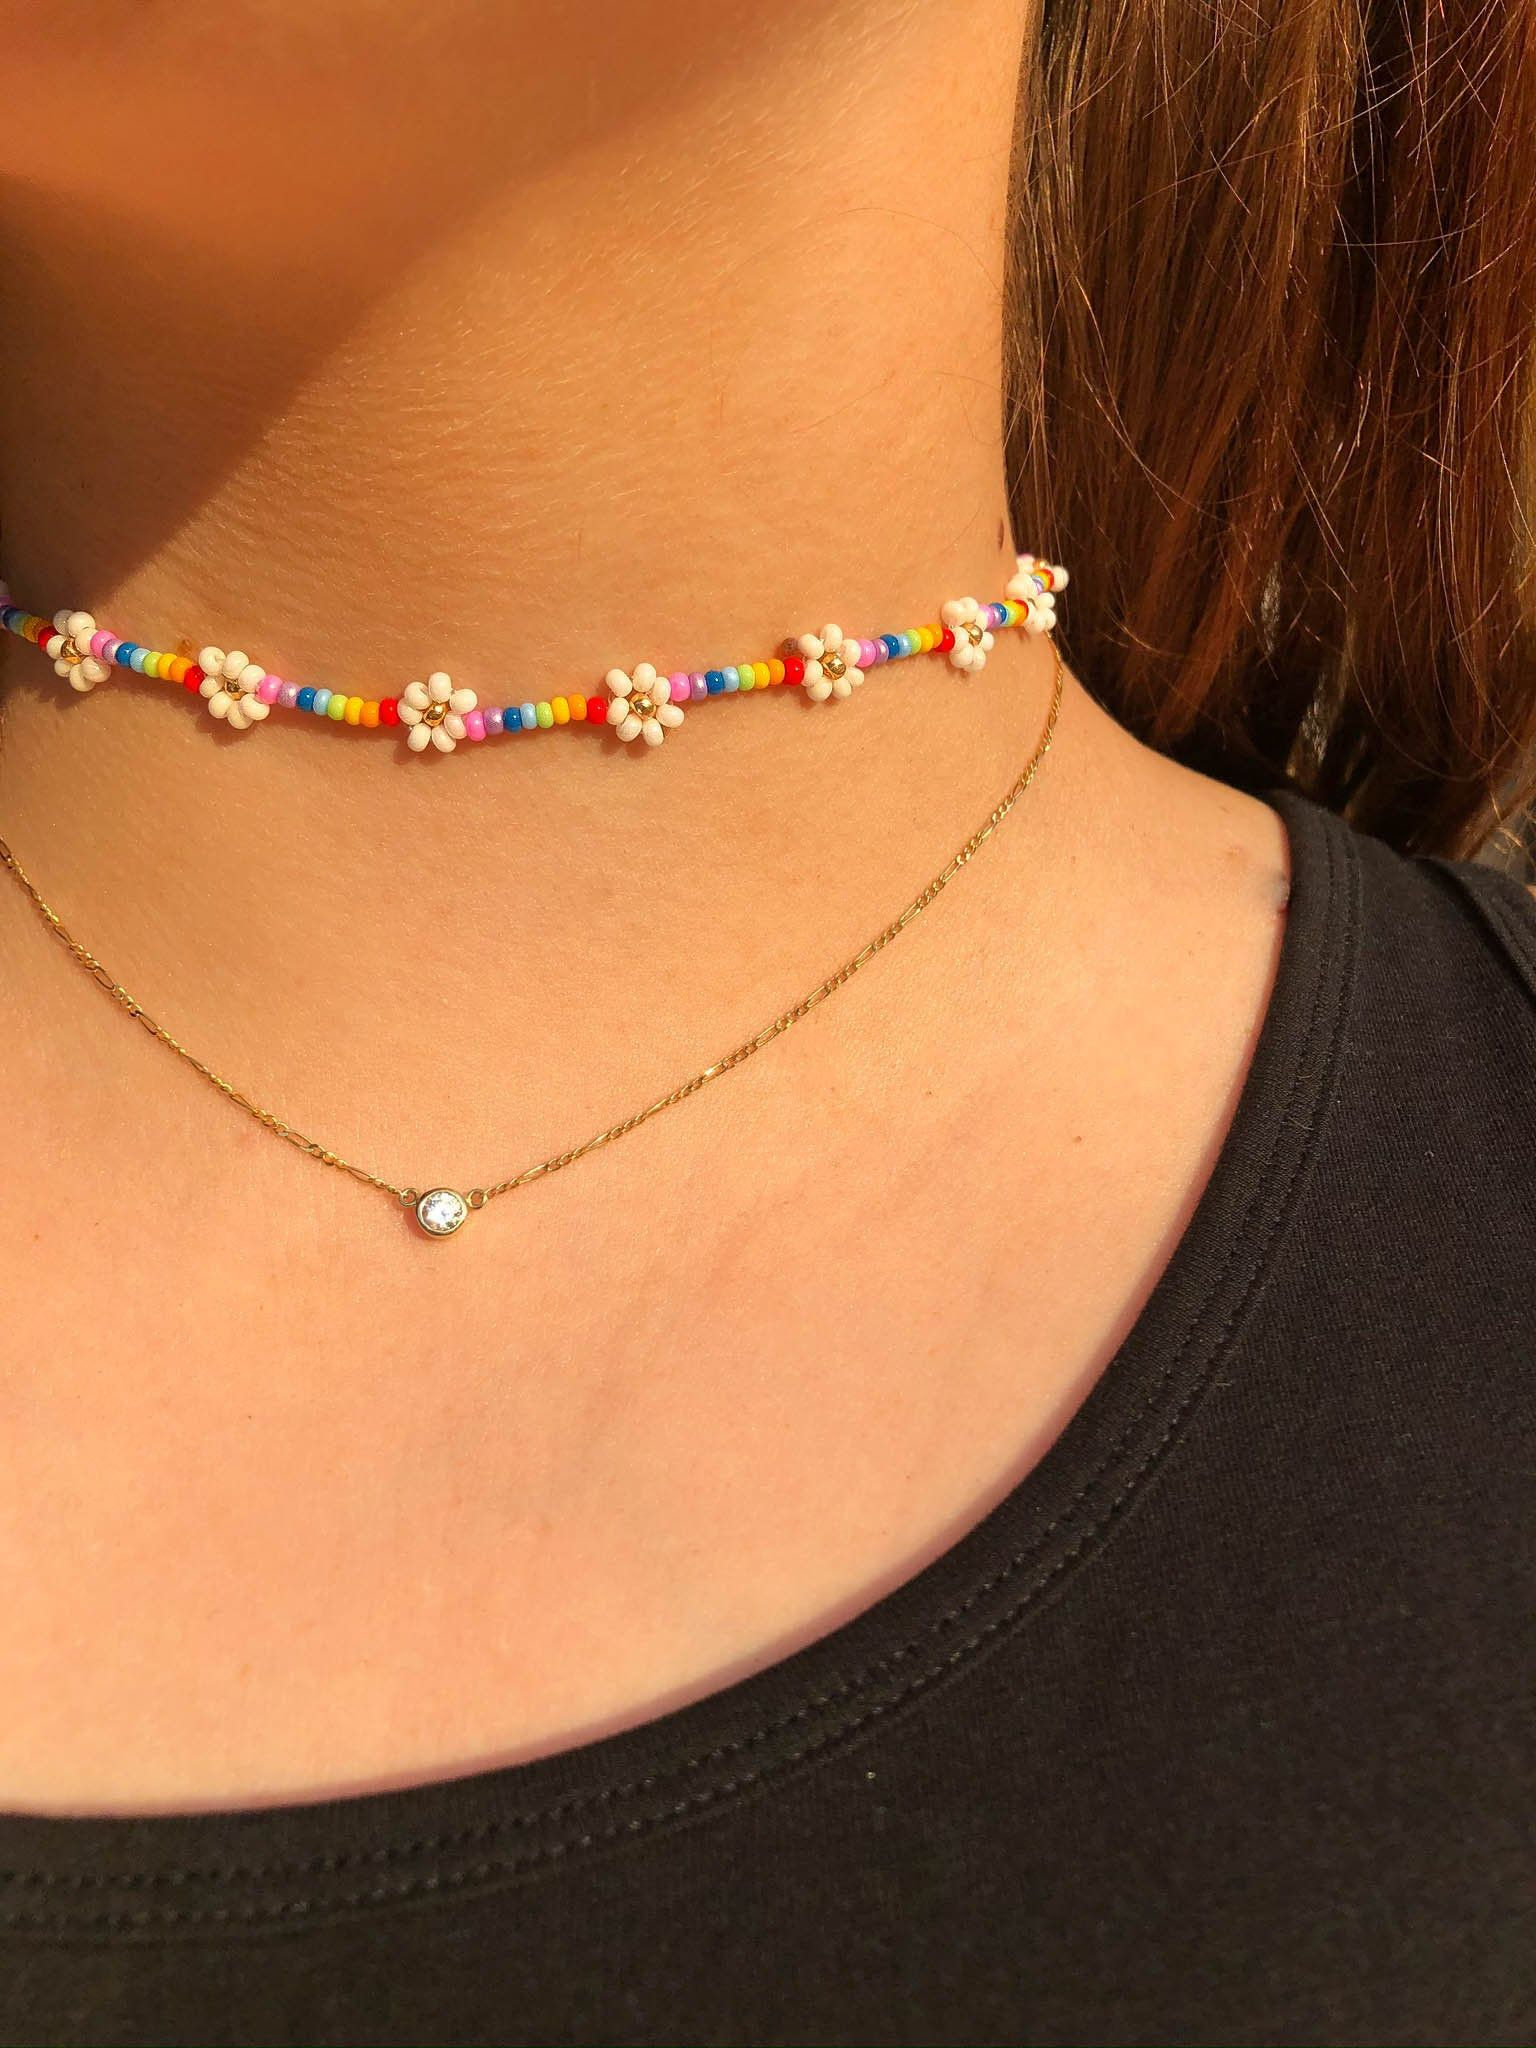 CLEO Chocker Gold Choker Necklace Delicate Necklace Simple Gold Choker Necklace for women Gold Necklace for women Necklace for Women